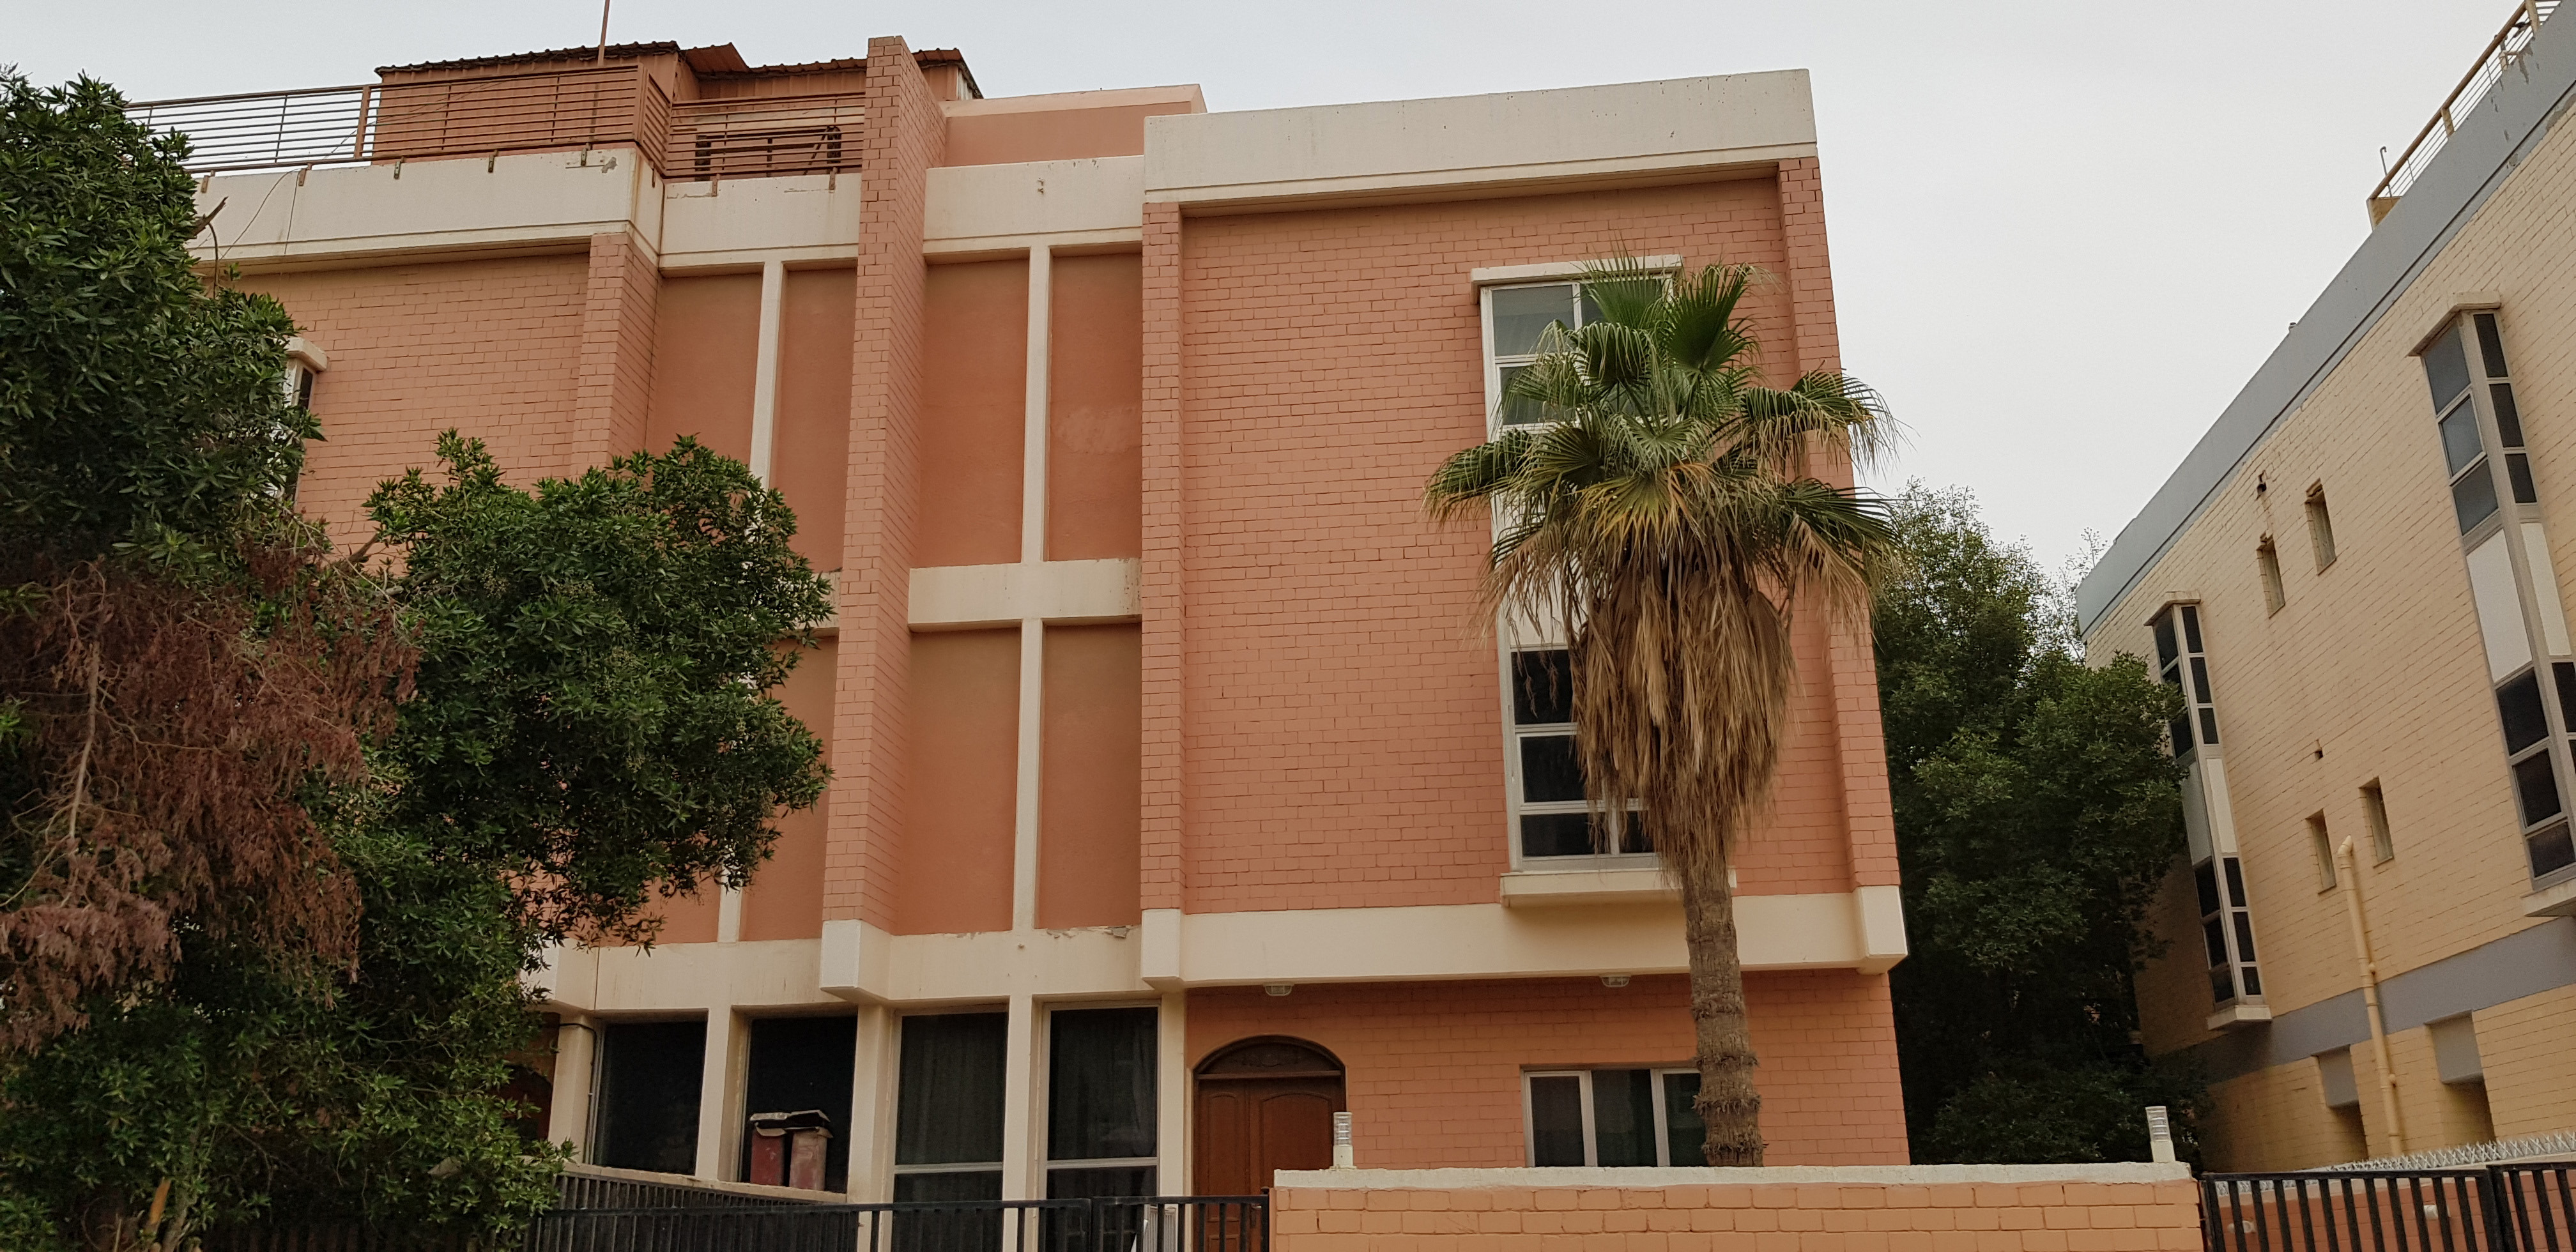 A Latter-day Saint congregation meets in this building in Kuwait.